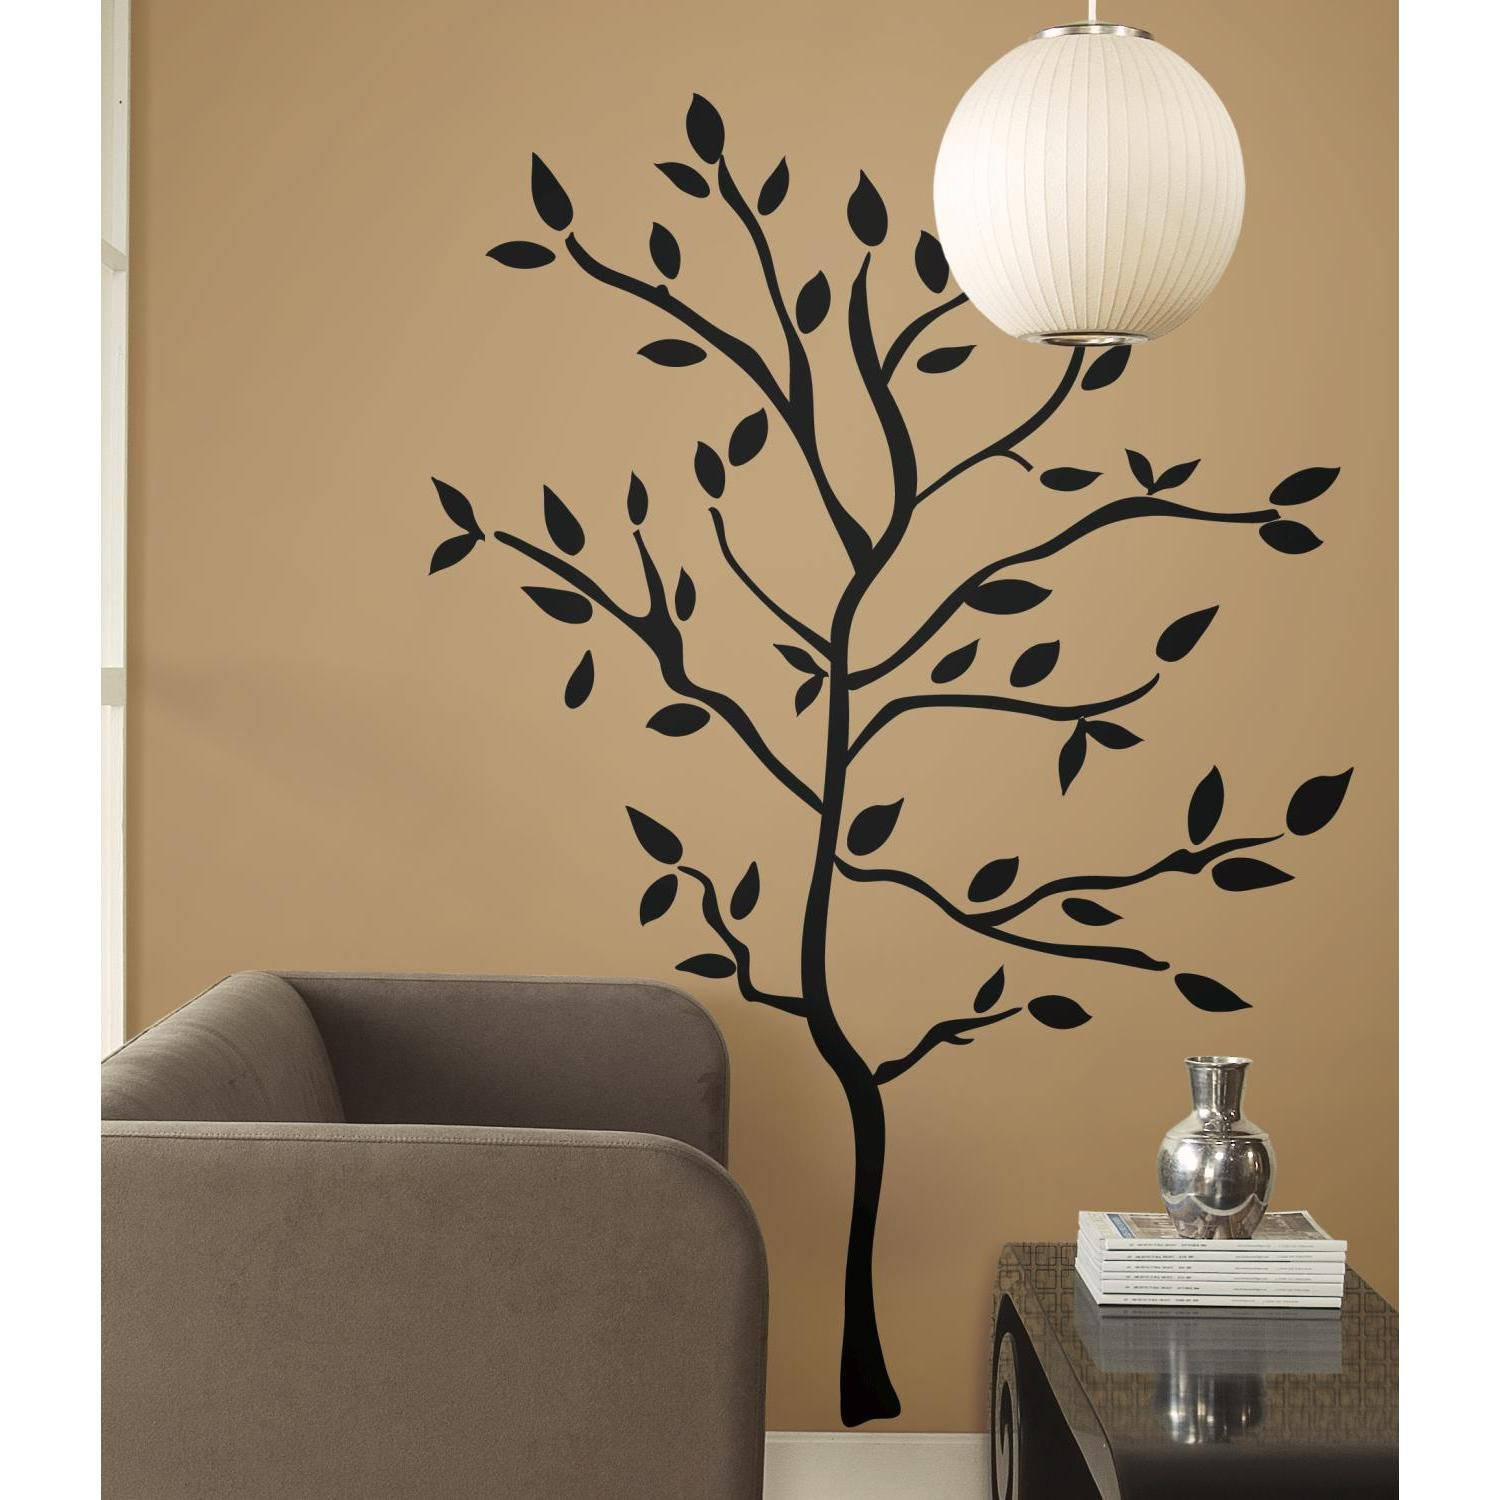 Roommates rmk1317gm tree branches peel stick wall decals wall roommates rmk1317gm tree branches peel stick wall decals wall decor stickers amazon amipublicfo Gallery